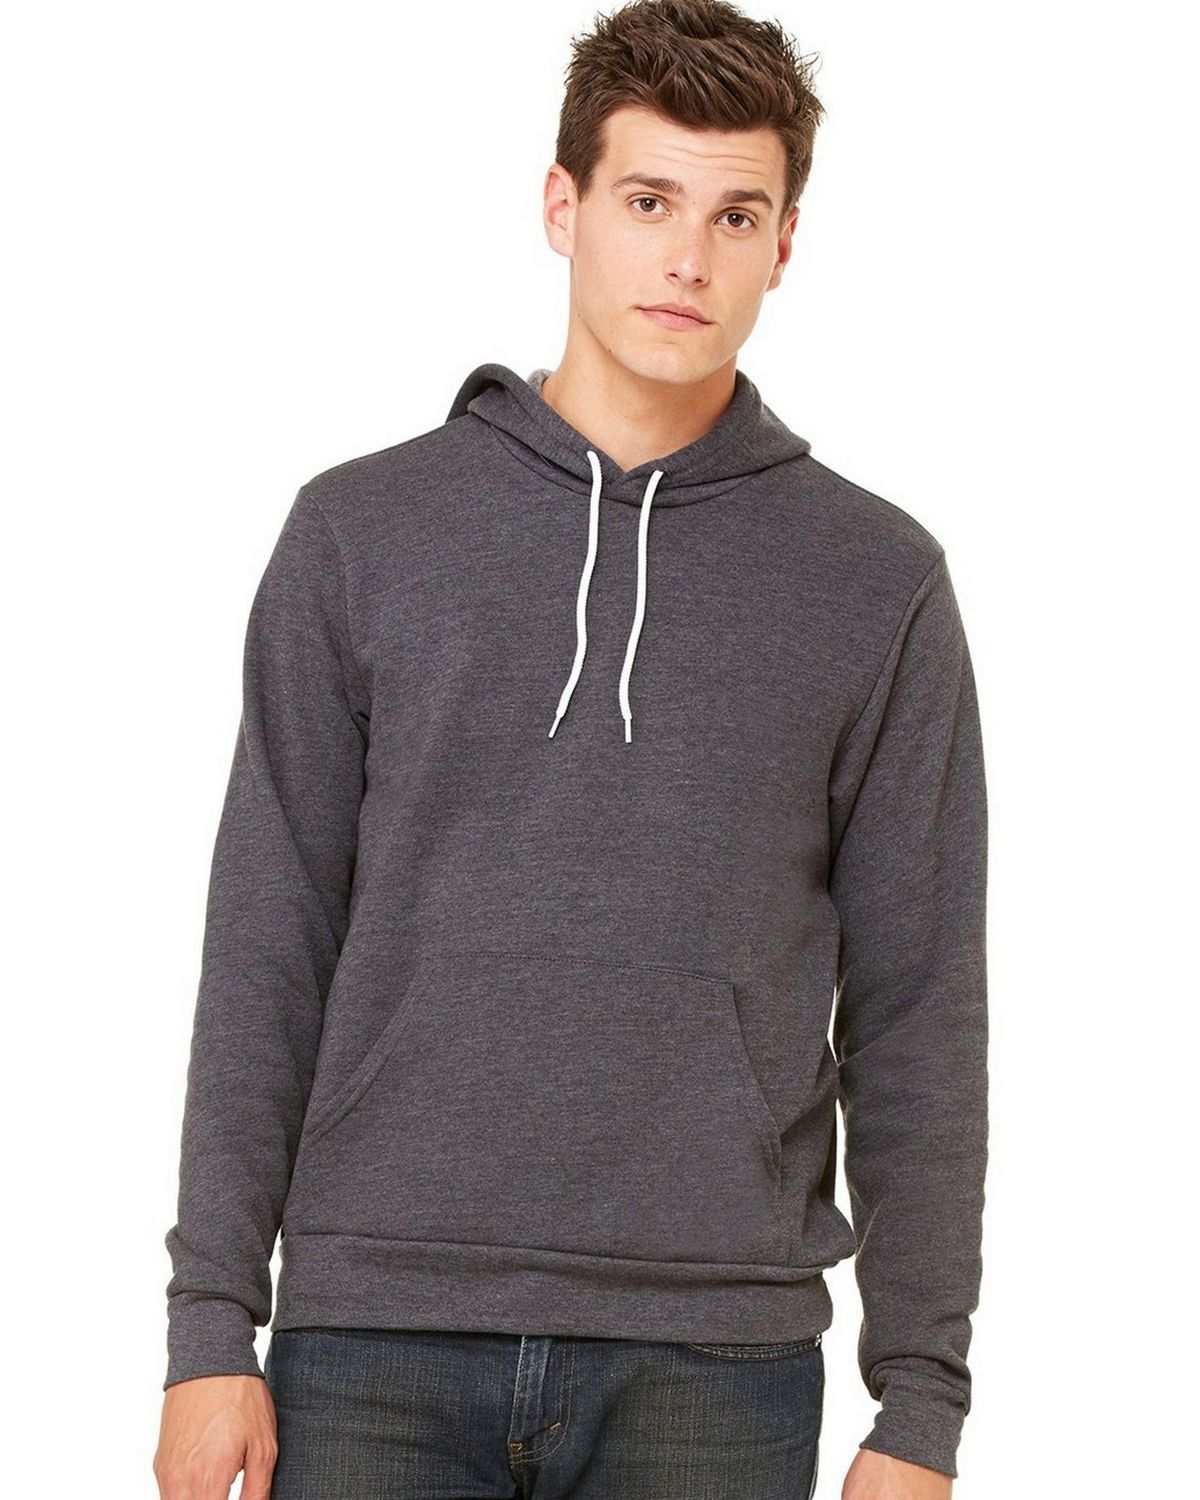 Bella + Canvas C3719 Unisex Pullover Hoodie - Heather True Royal - M C3719